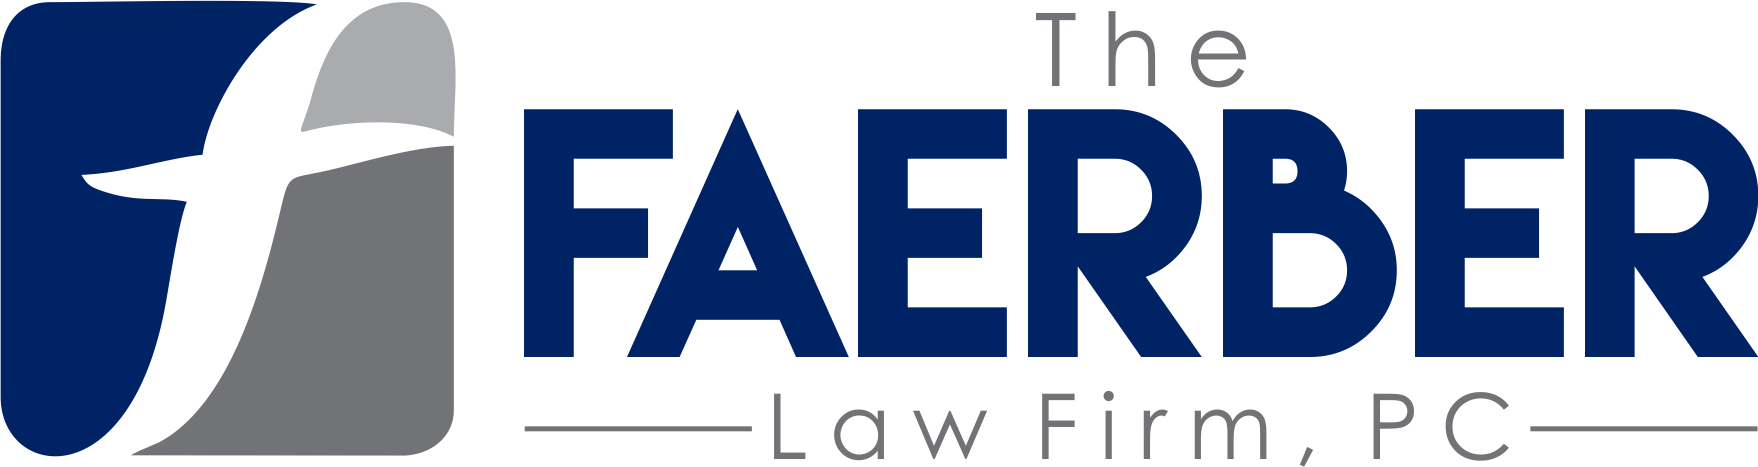 Faerber Law Firm